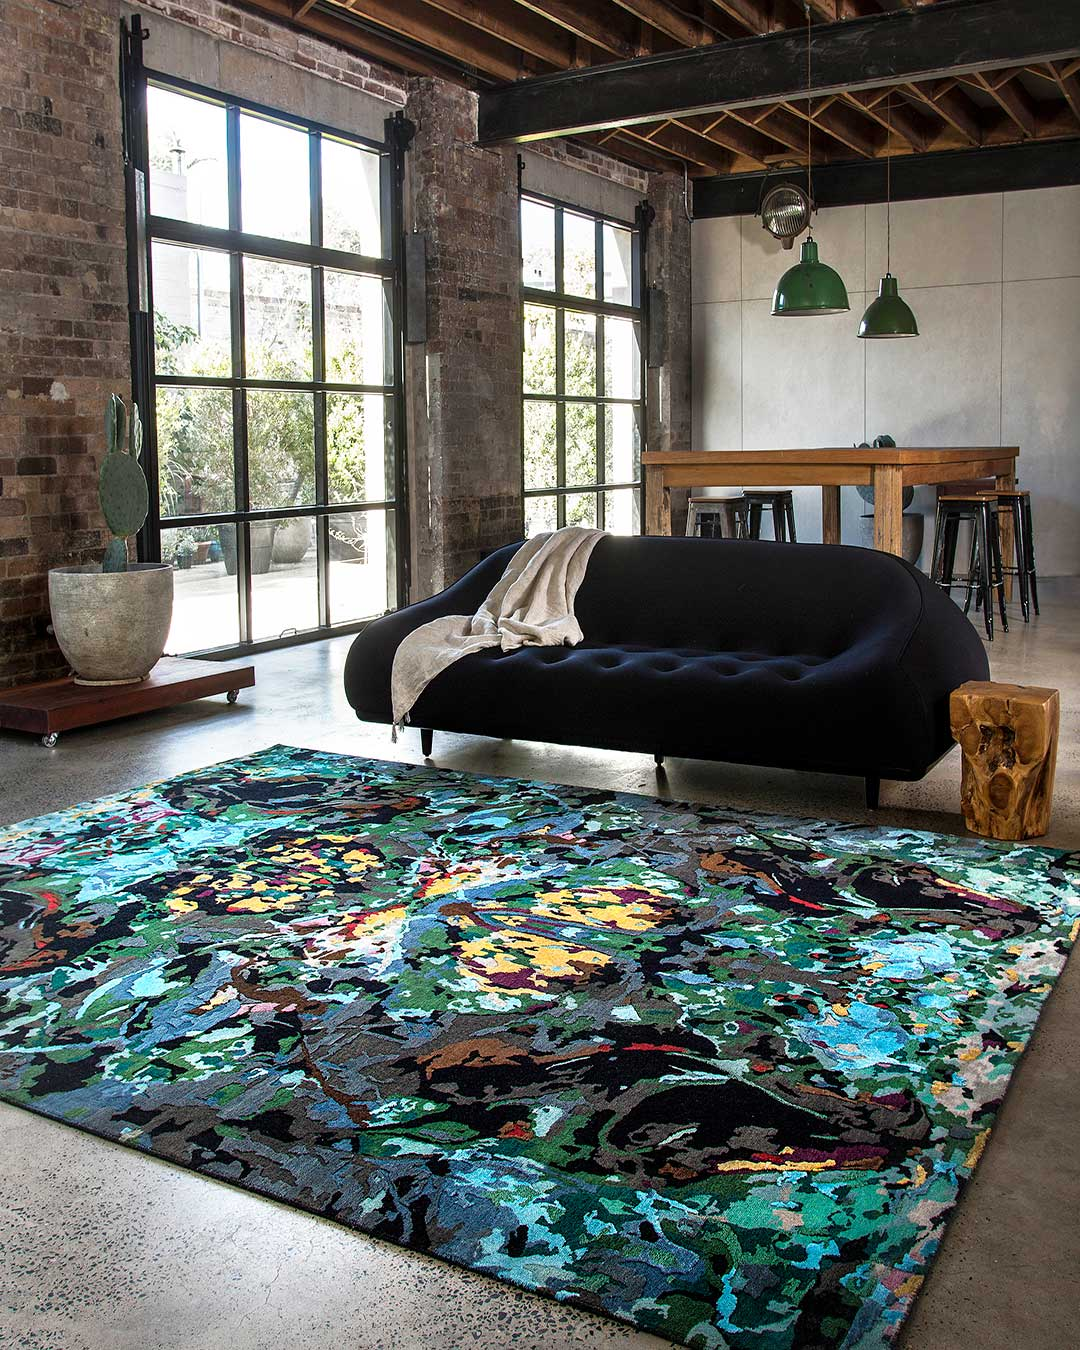 location living room shot of opal oasis rug by derryn tal